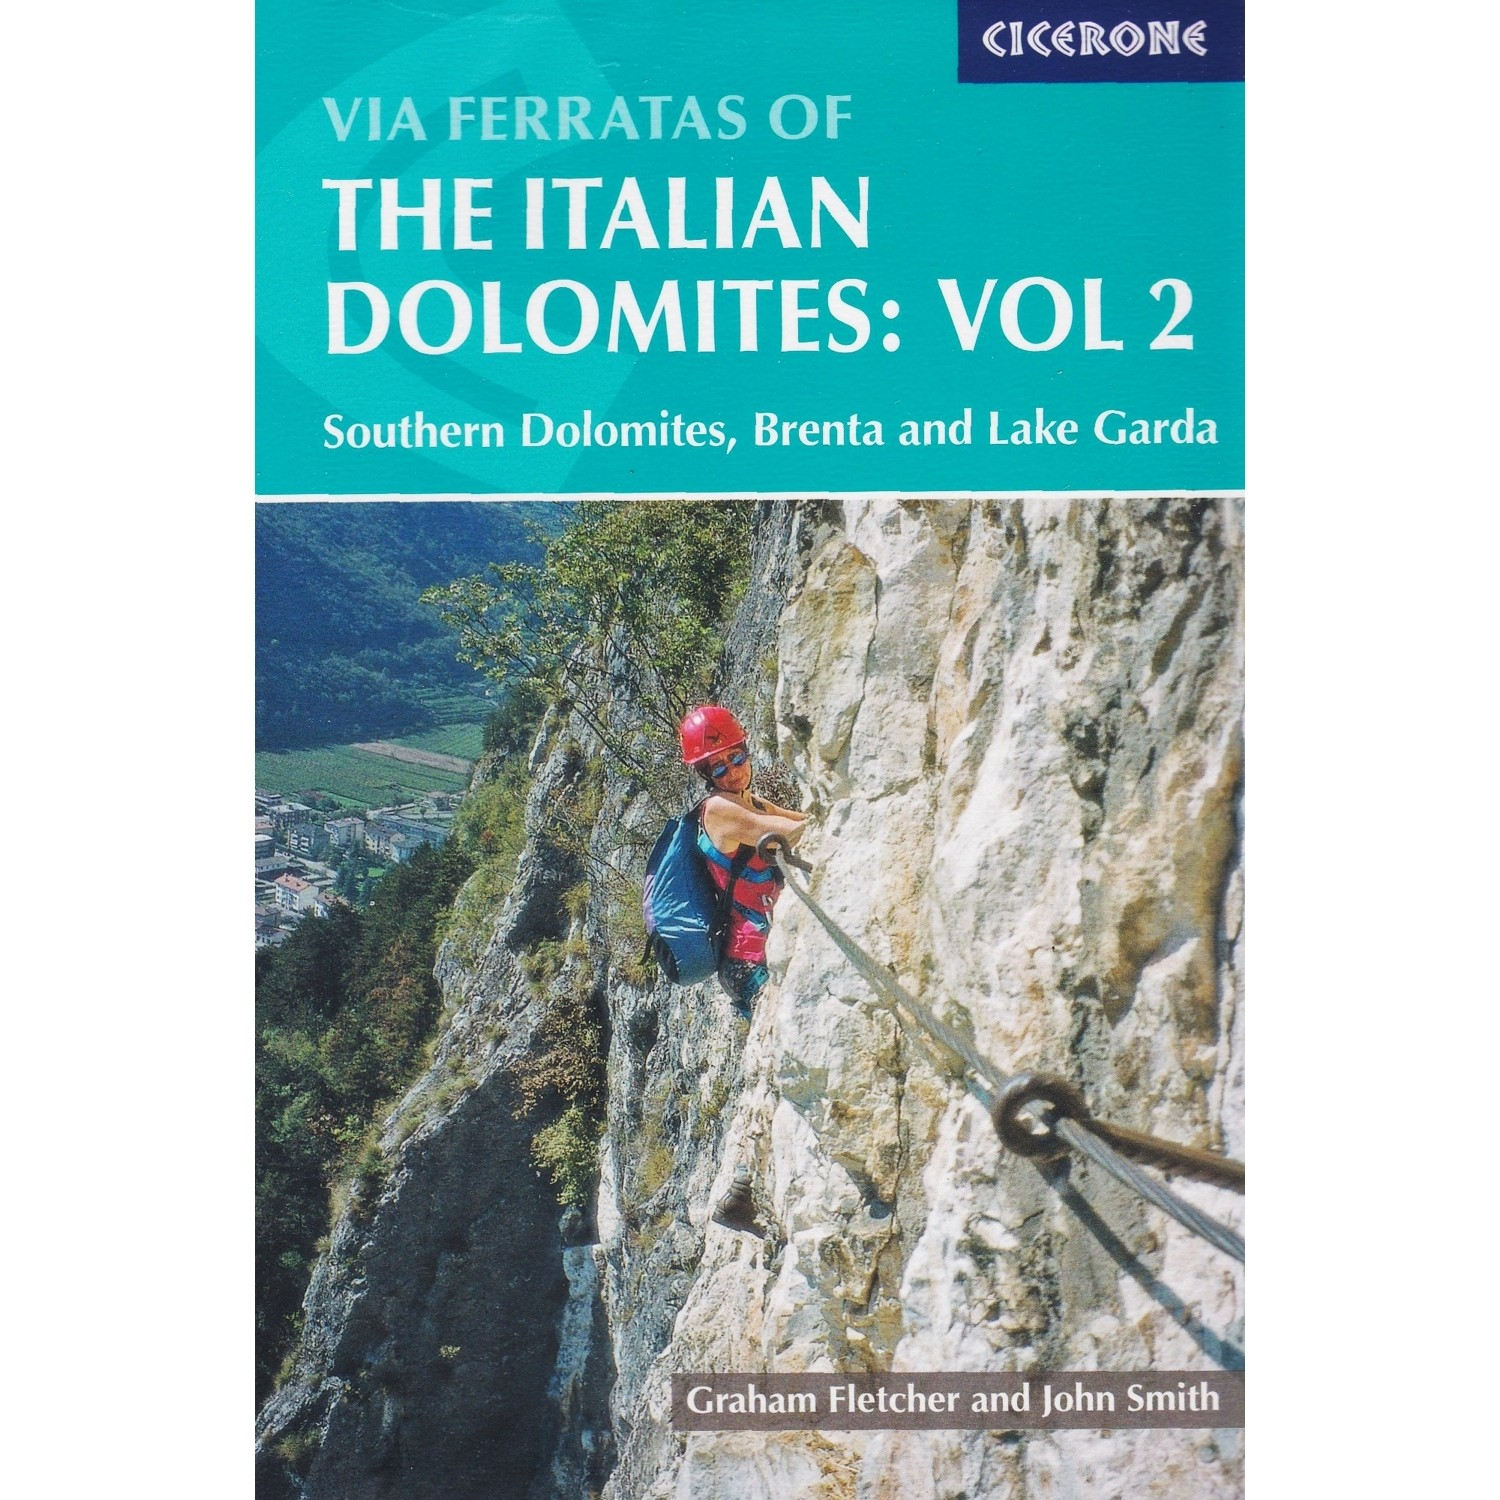 Via Ferratas of the Italian Dolomites Volume 2